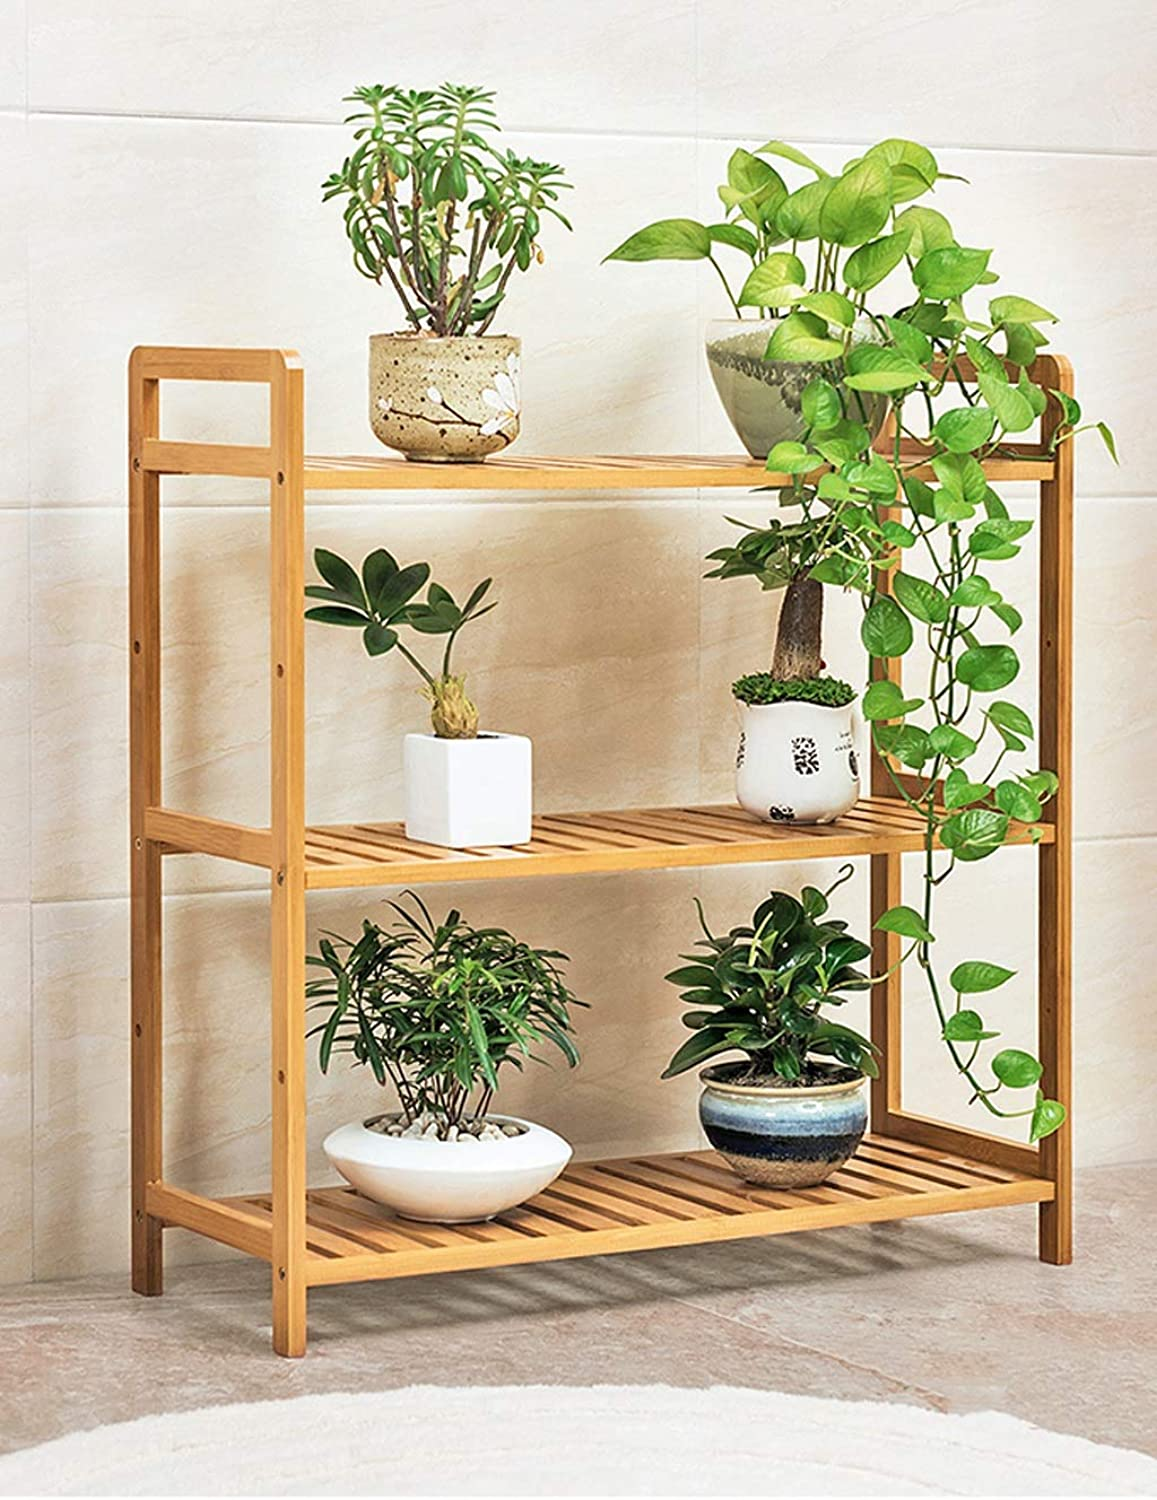 Flower Frame Bamboo Frame Multi-Layer Indoor Multi-Function Living Room Combination Plant Potted Green Plant Balcony Flower Stand Three Styles Optional (Size   3-Tier Length 68cm)